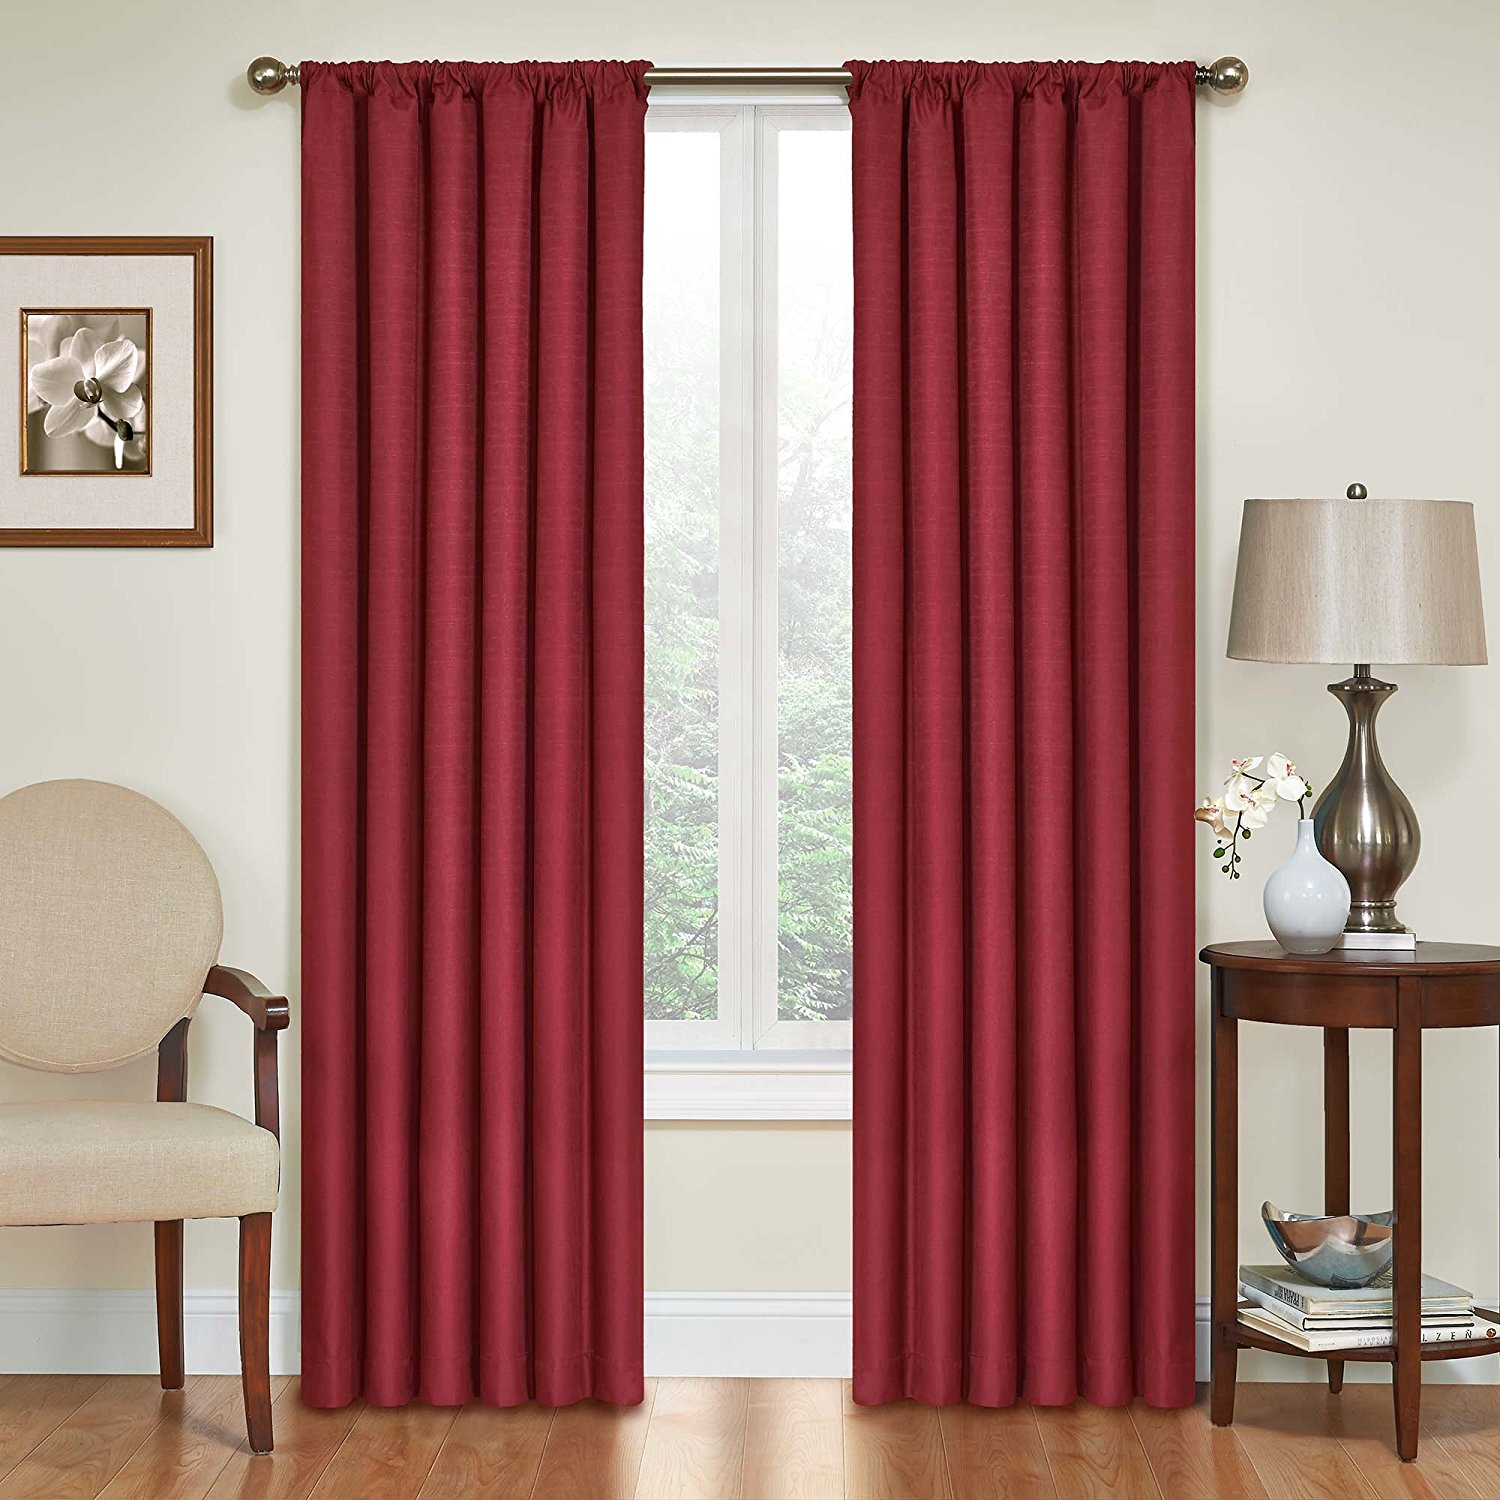 Eclipse 10707042X063RBY Kendall 42-Inch by 63-Inch Thermaback Blackout Single Panel, Ruby By Eclipse Curtains Ship from US